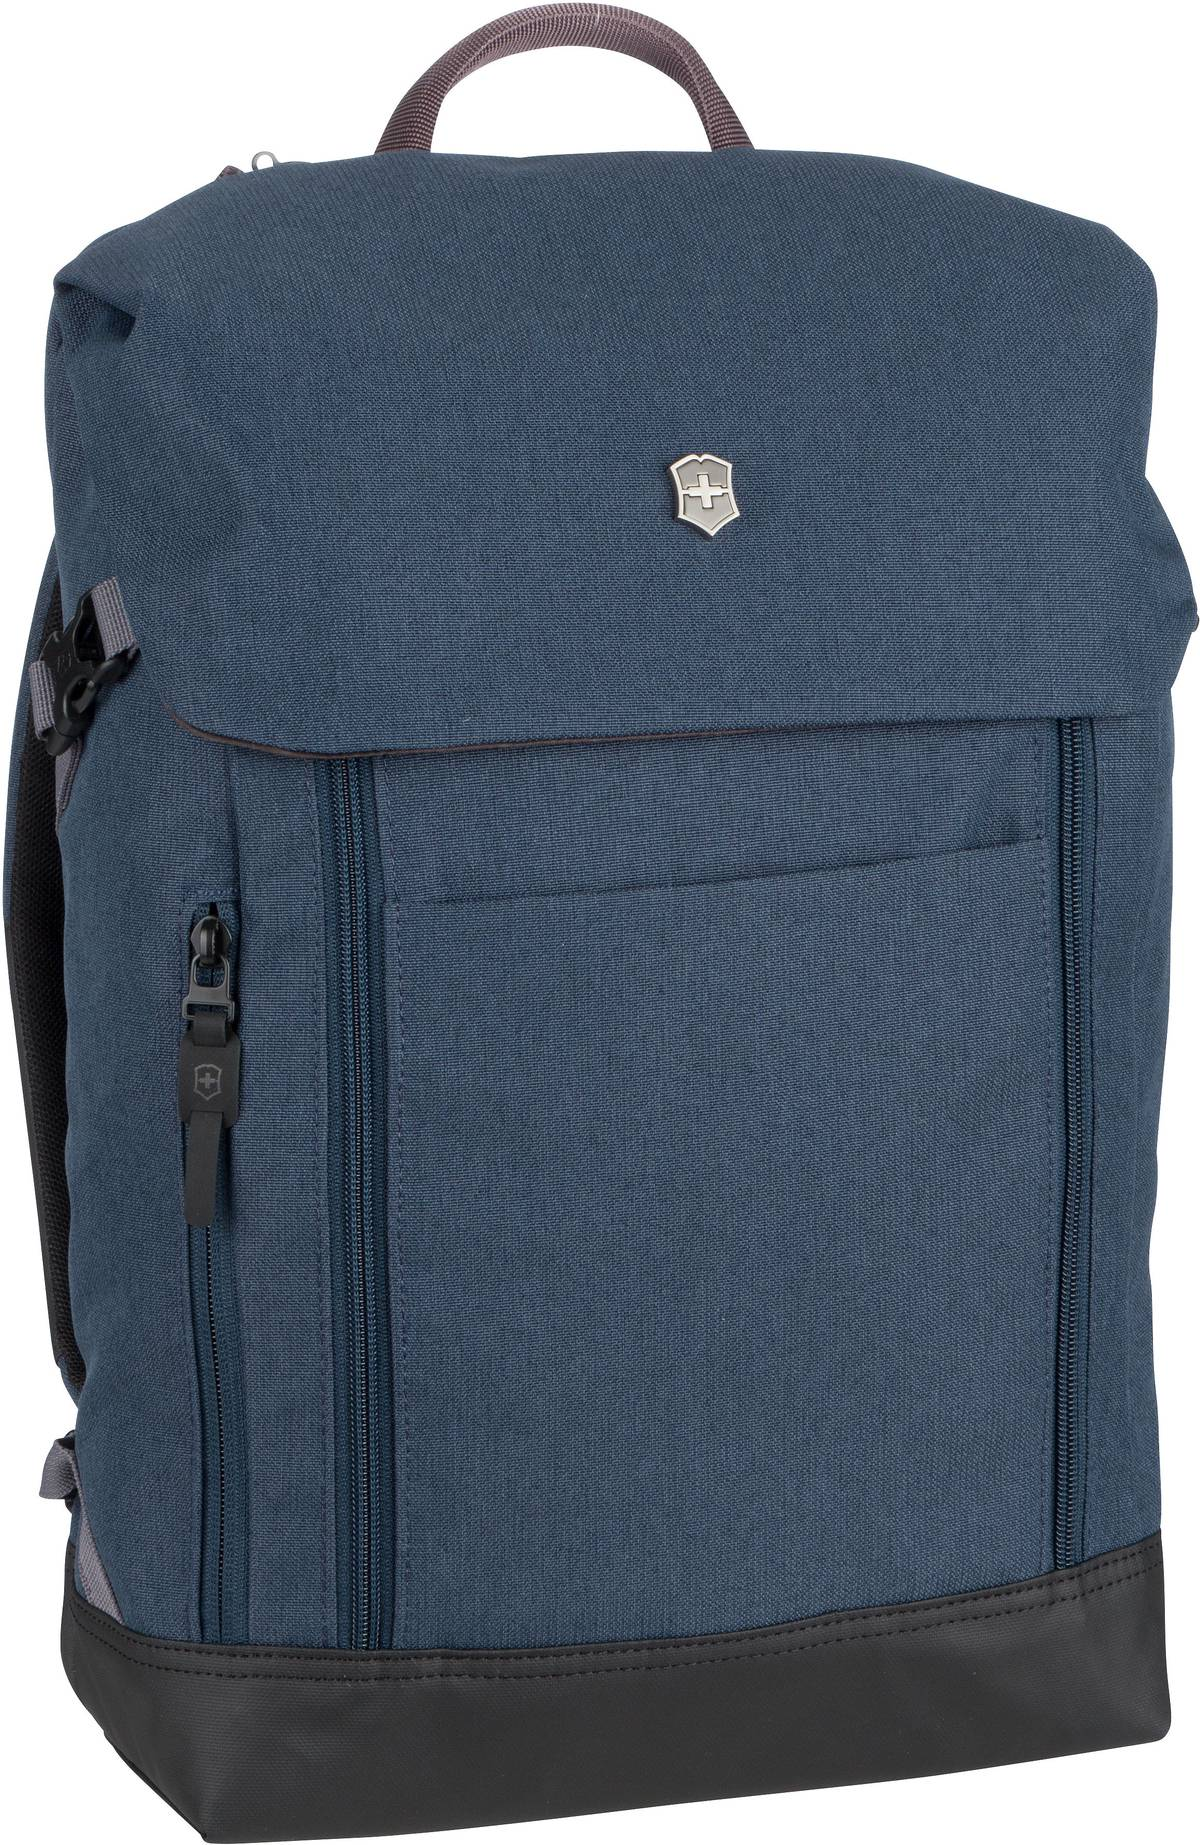 Laptoprucksack Altmont Classic Deluxe Flapover Laptop Backpack Deep Lake (14 Liter)